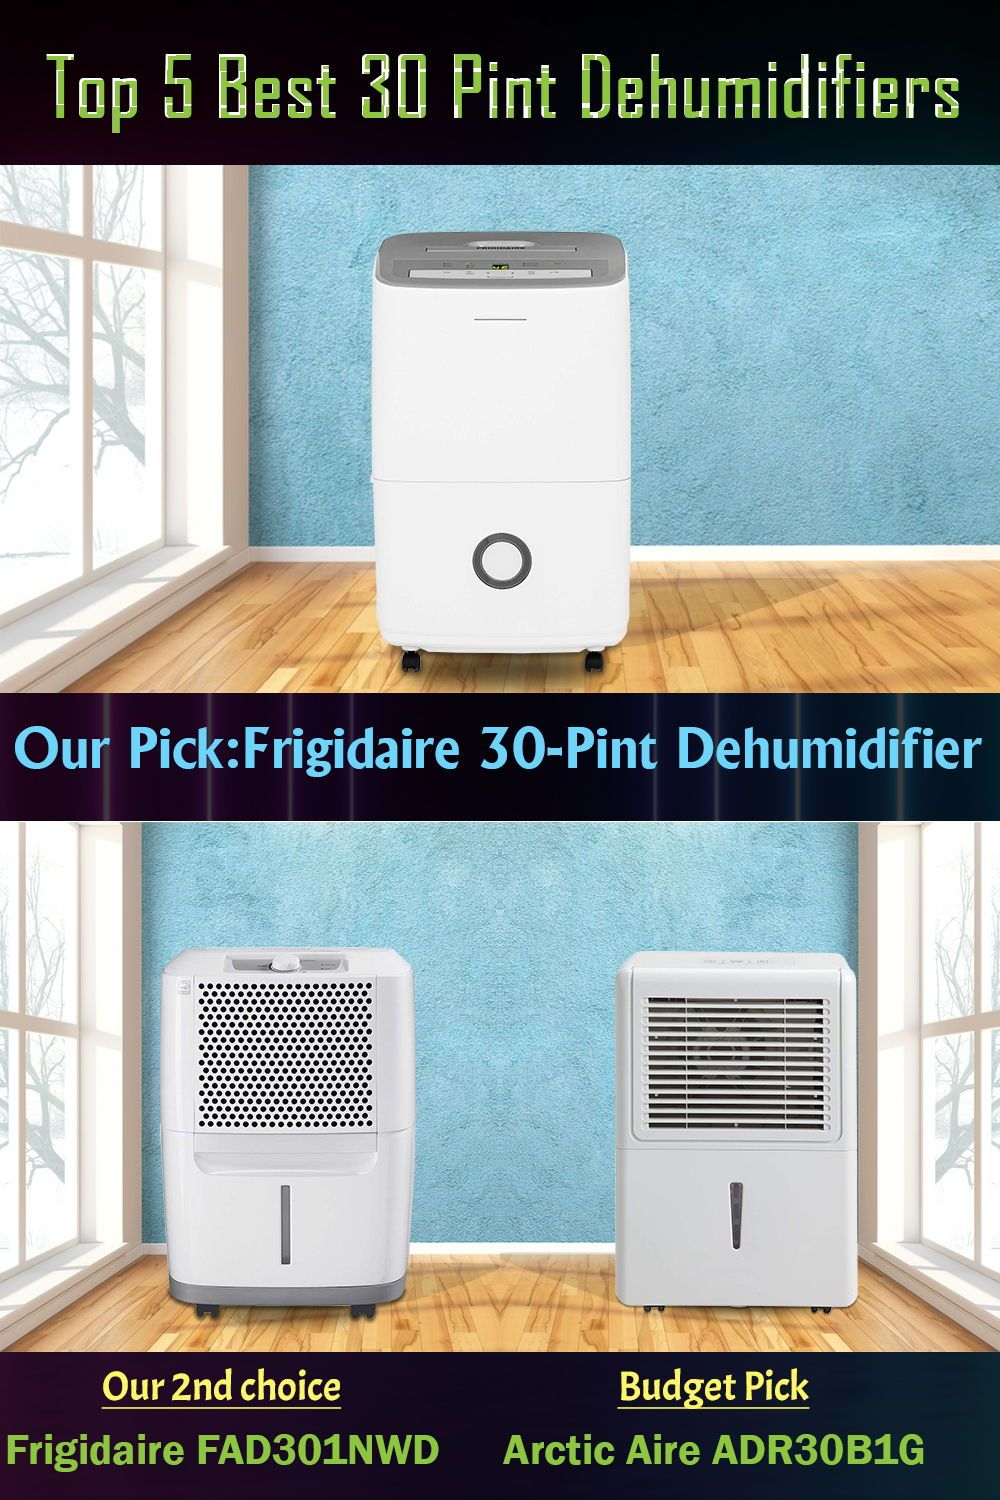 Are you looking a humidifier that can meet all your needs